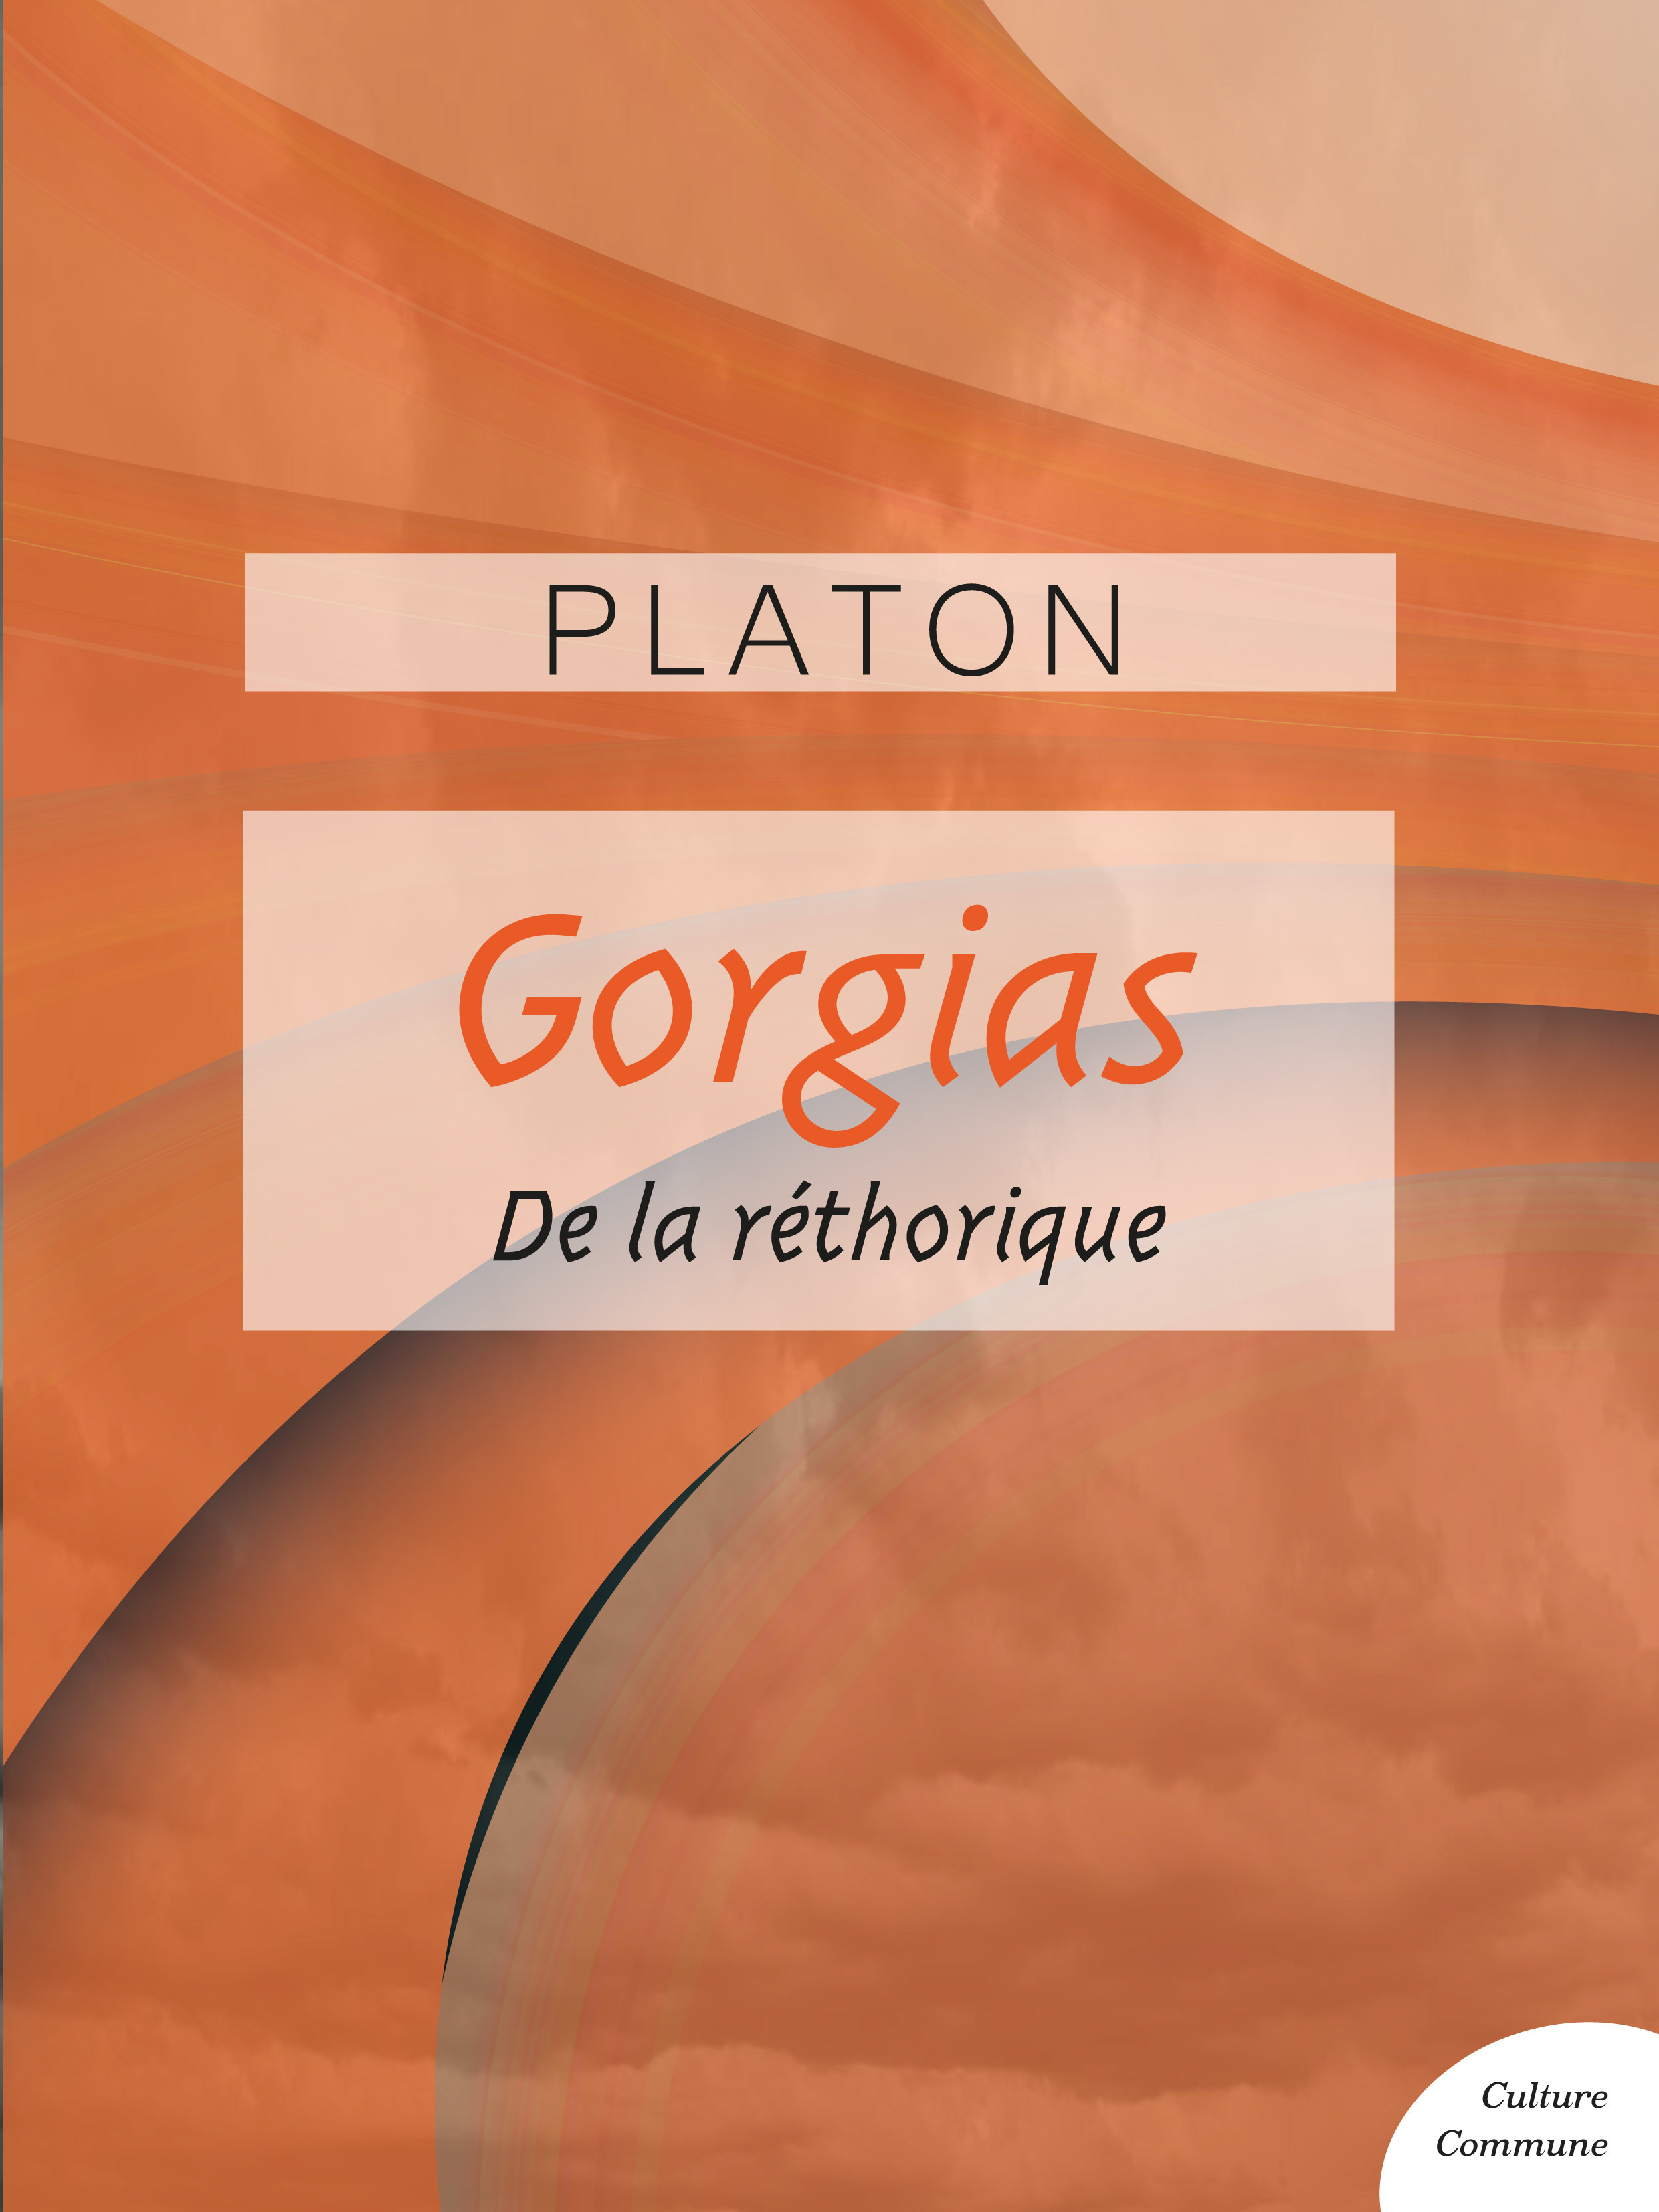 DE PLATON GORGIAS TÉLÉCHARGER